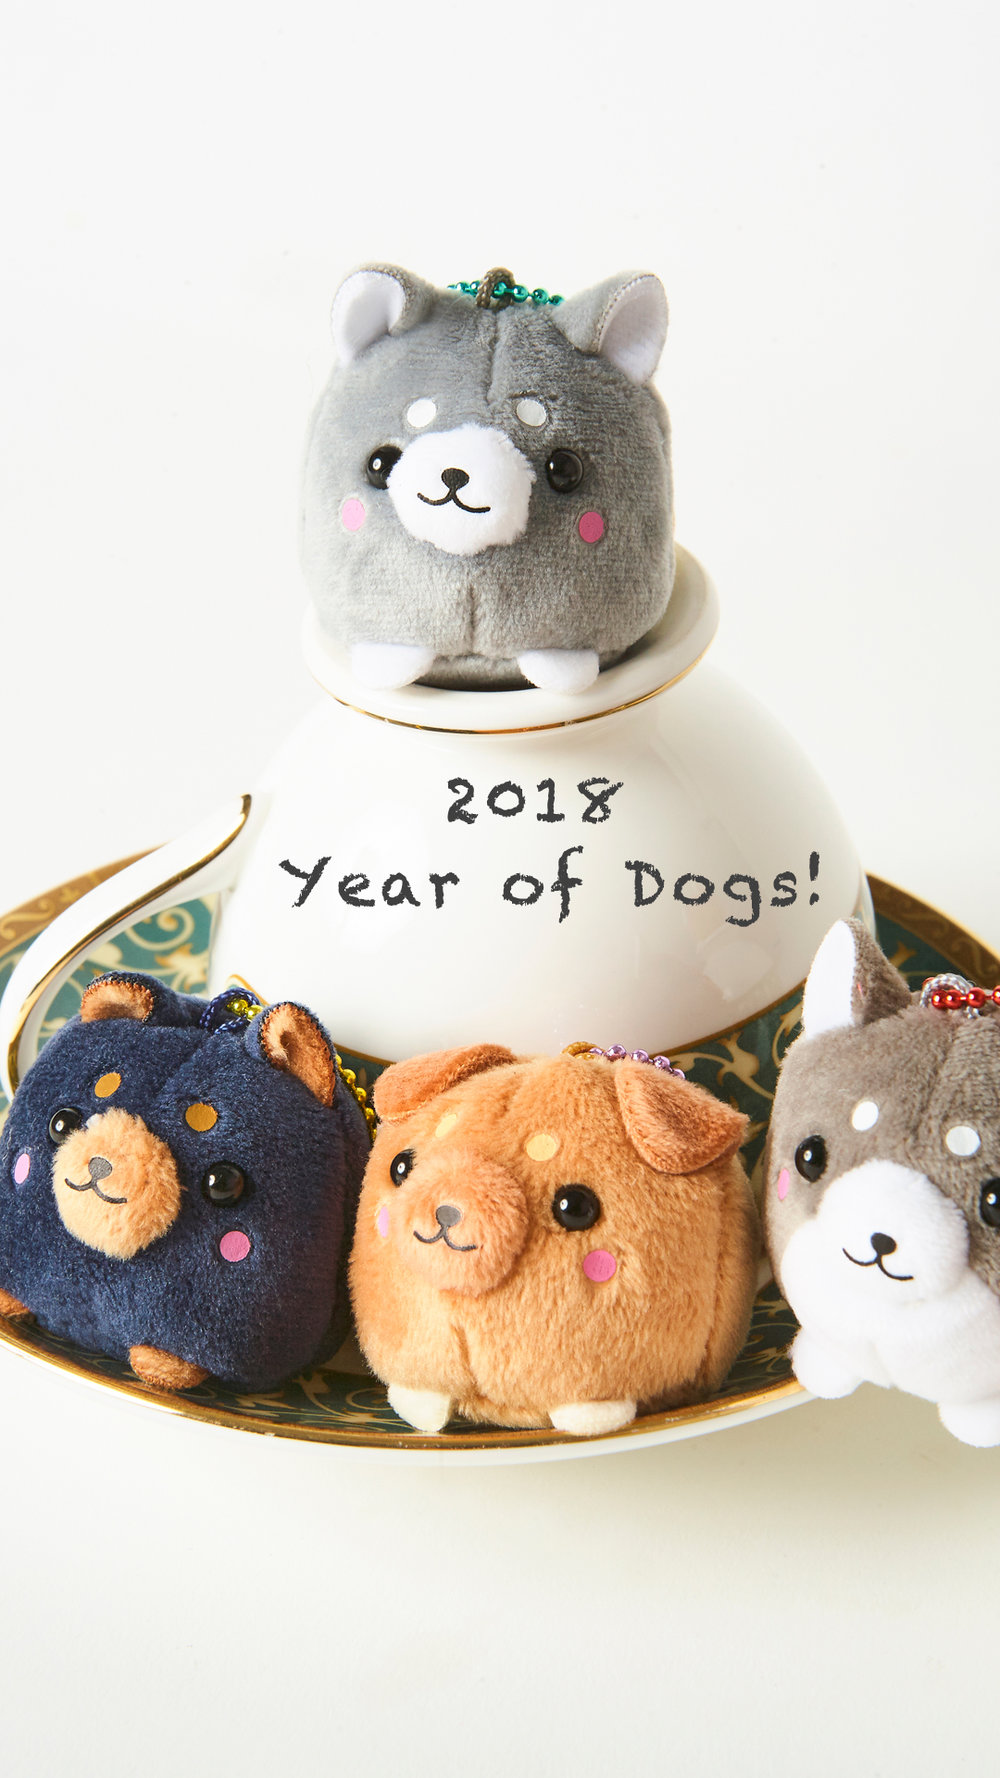 2018 Mobile Wallpaper - Dog Family #2 - Resolution: iOS/Android